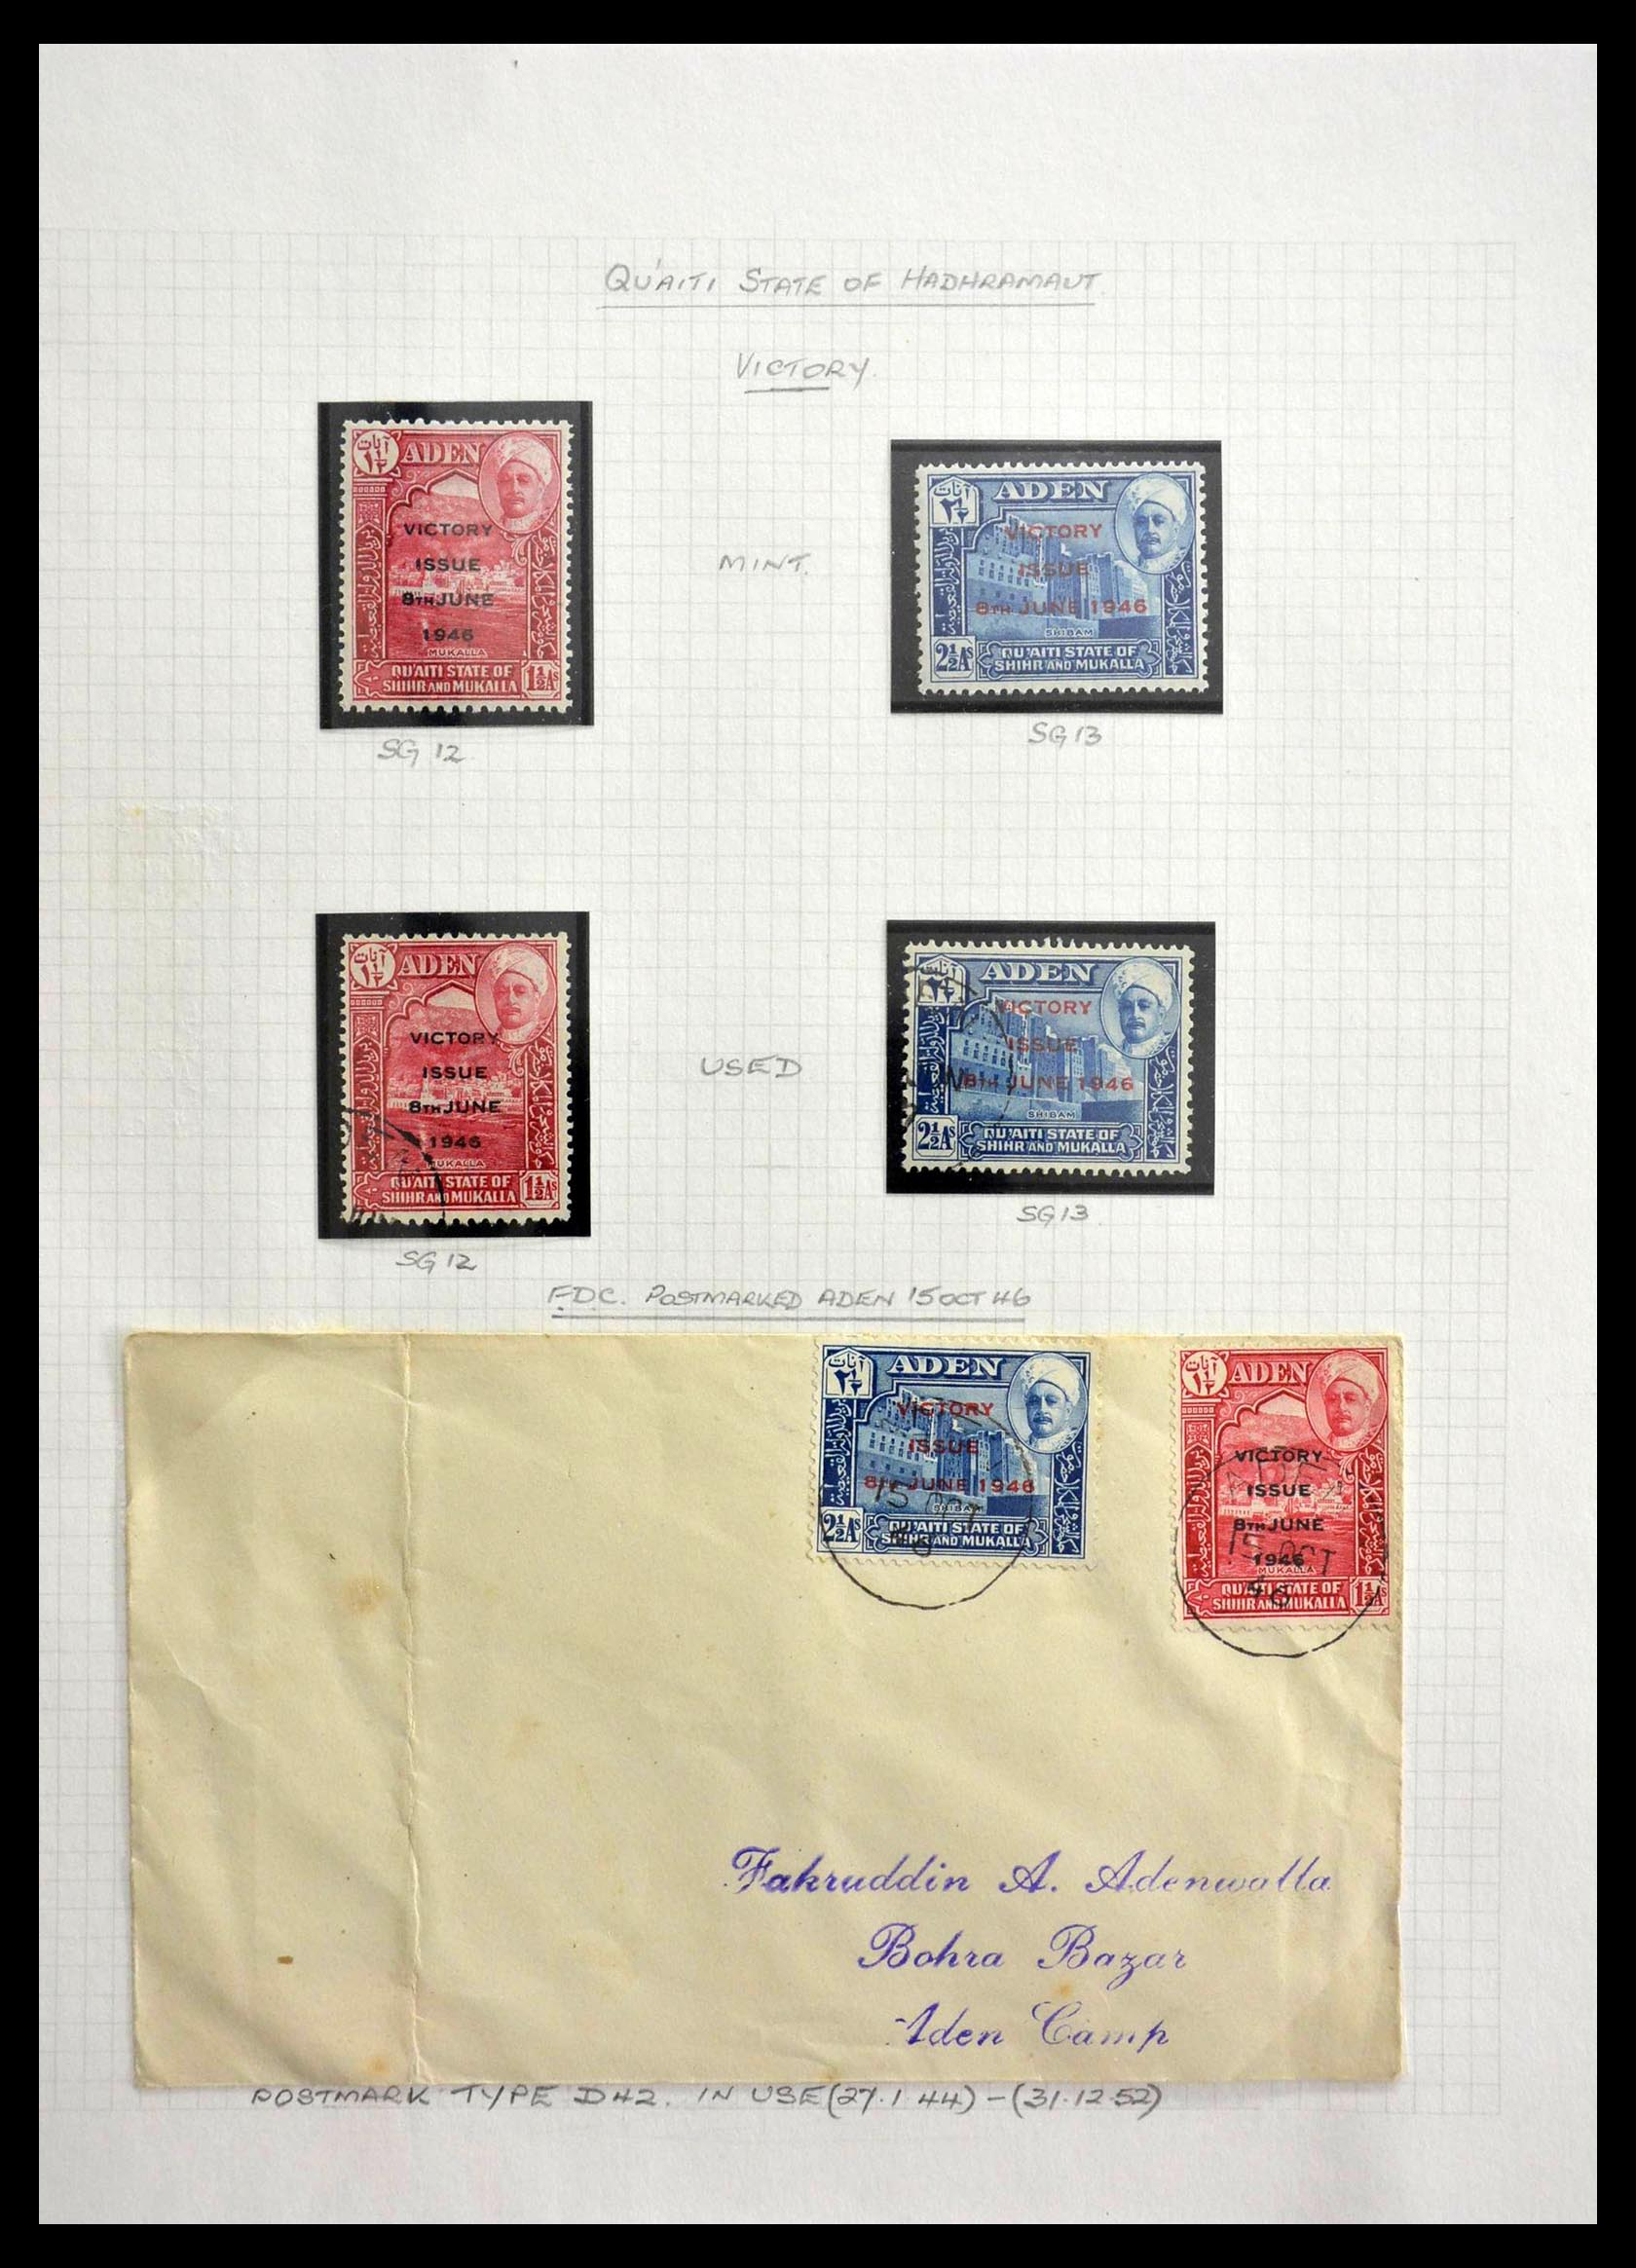 28672 008 - Stamp collection 28672 Aden Qu'aiti State 1942-1966.